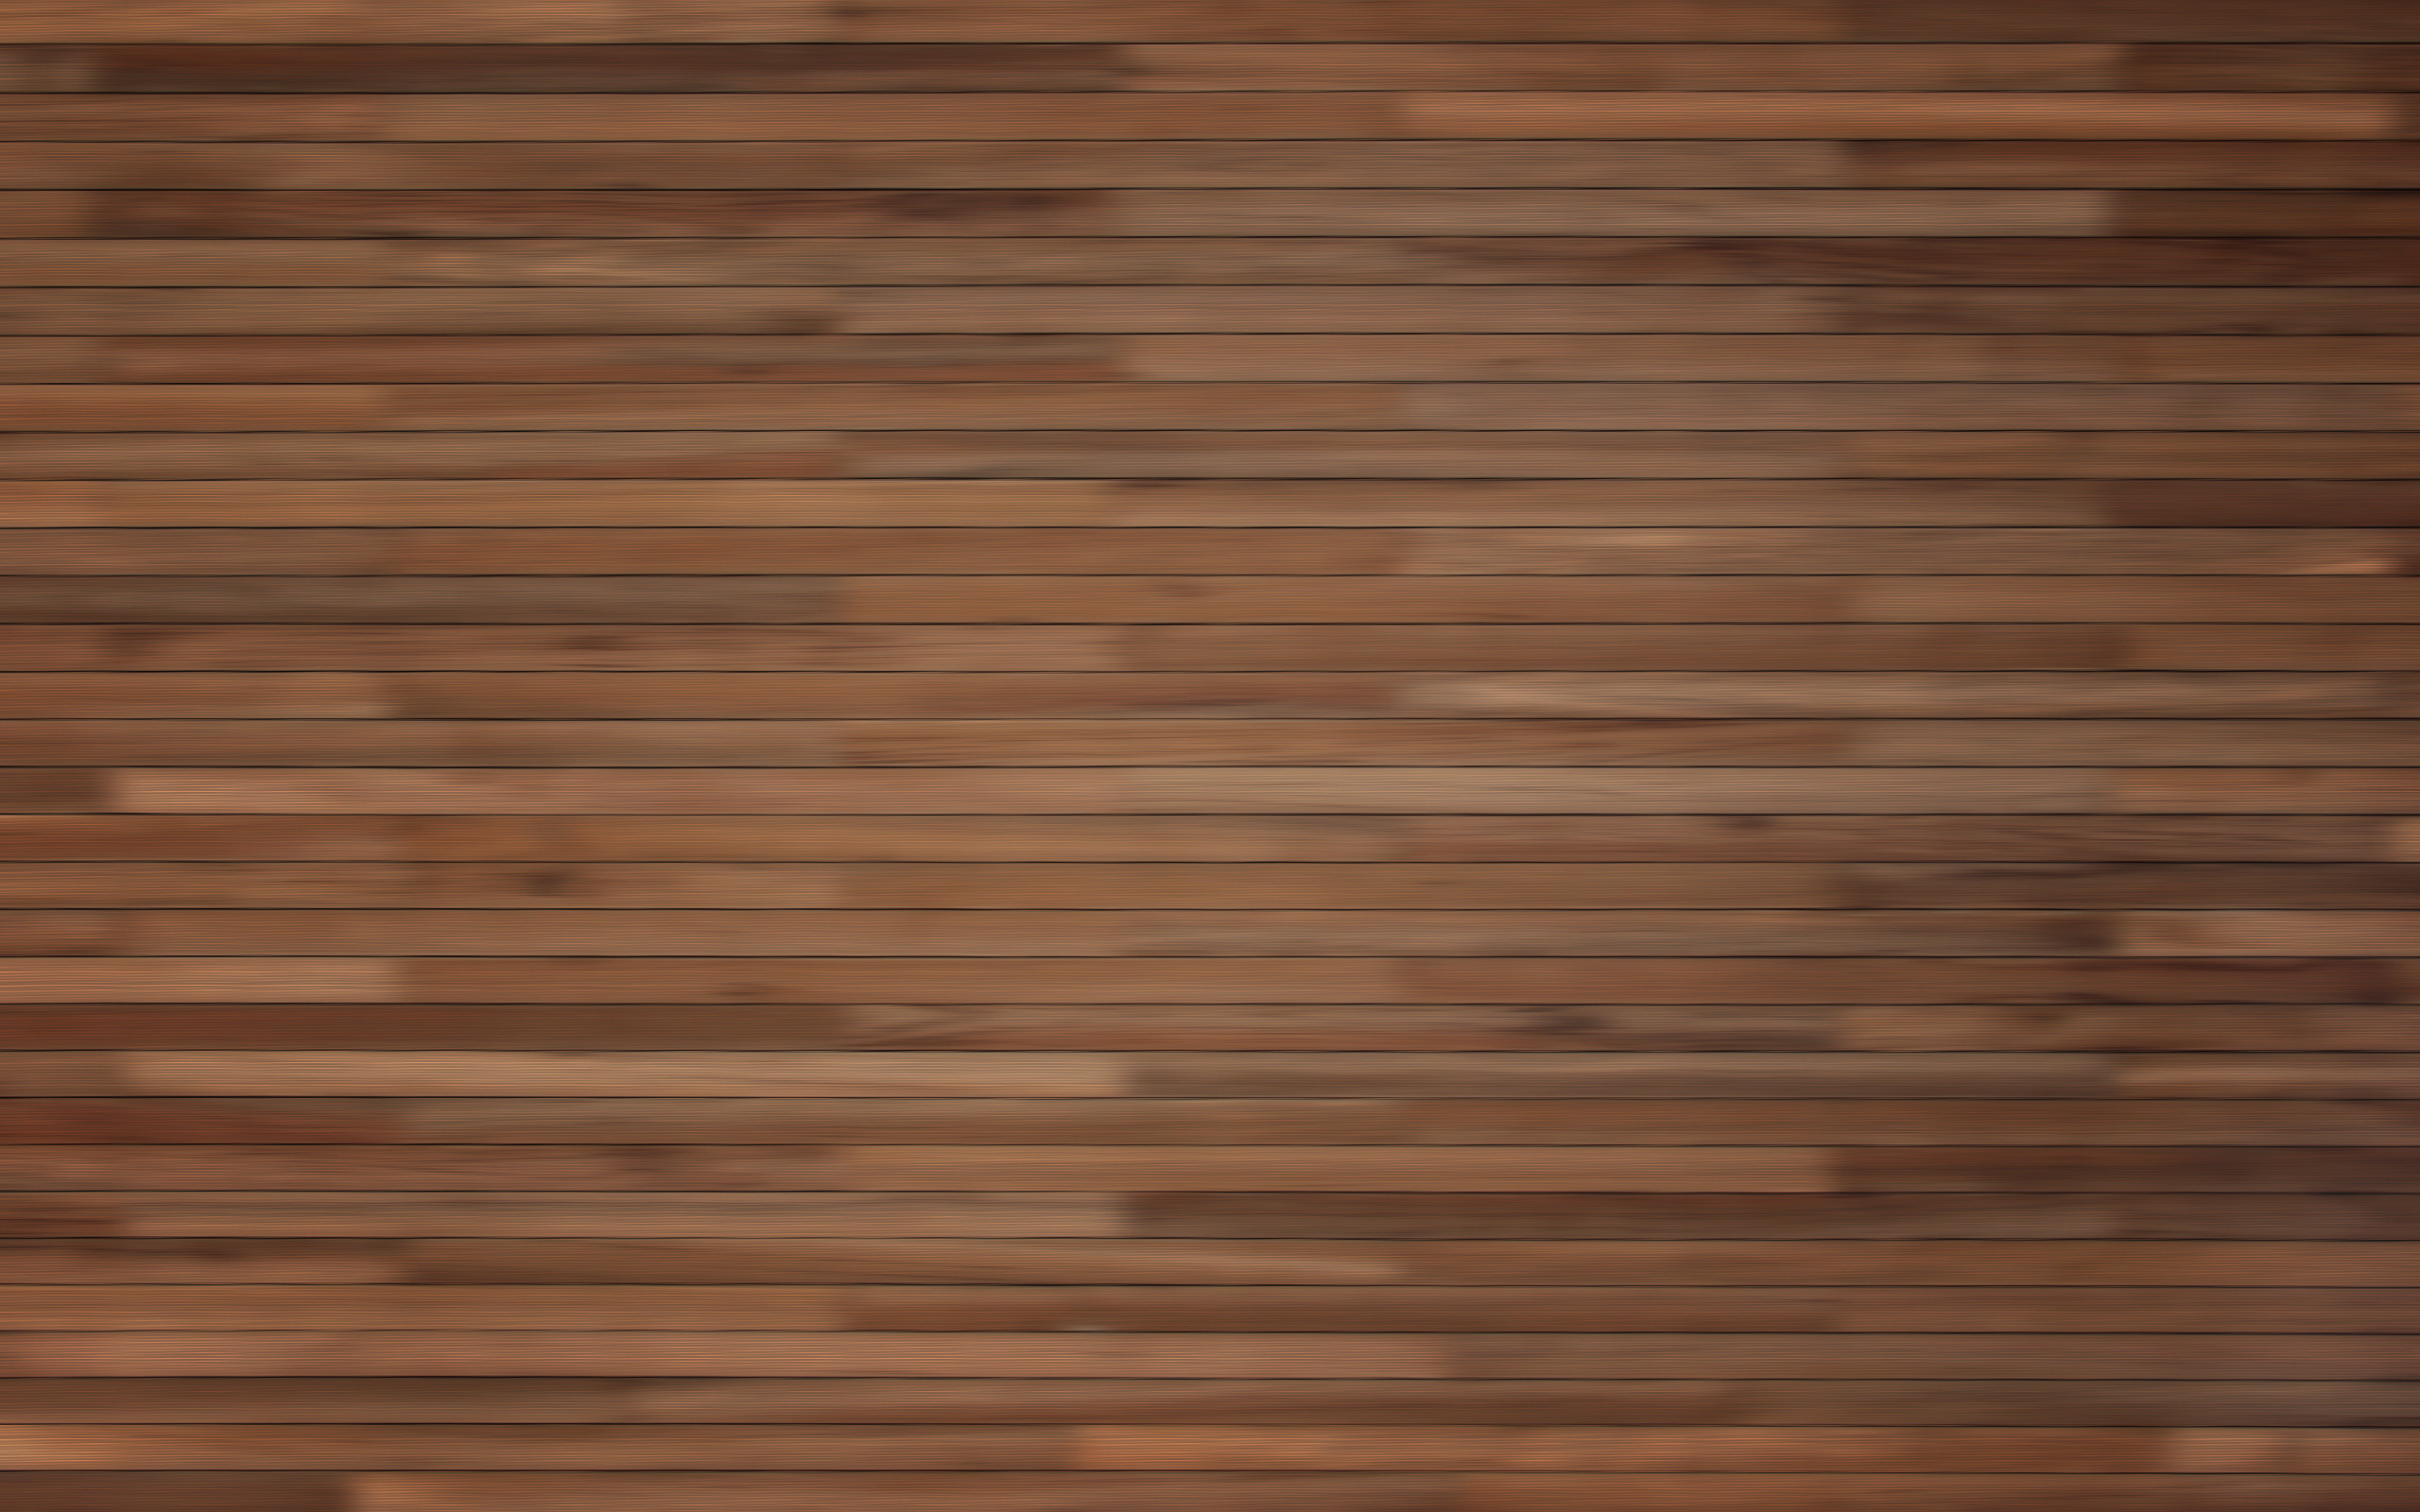 wood floor texture wallpaper